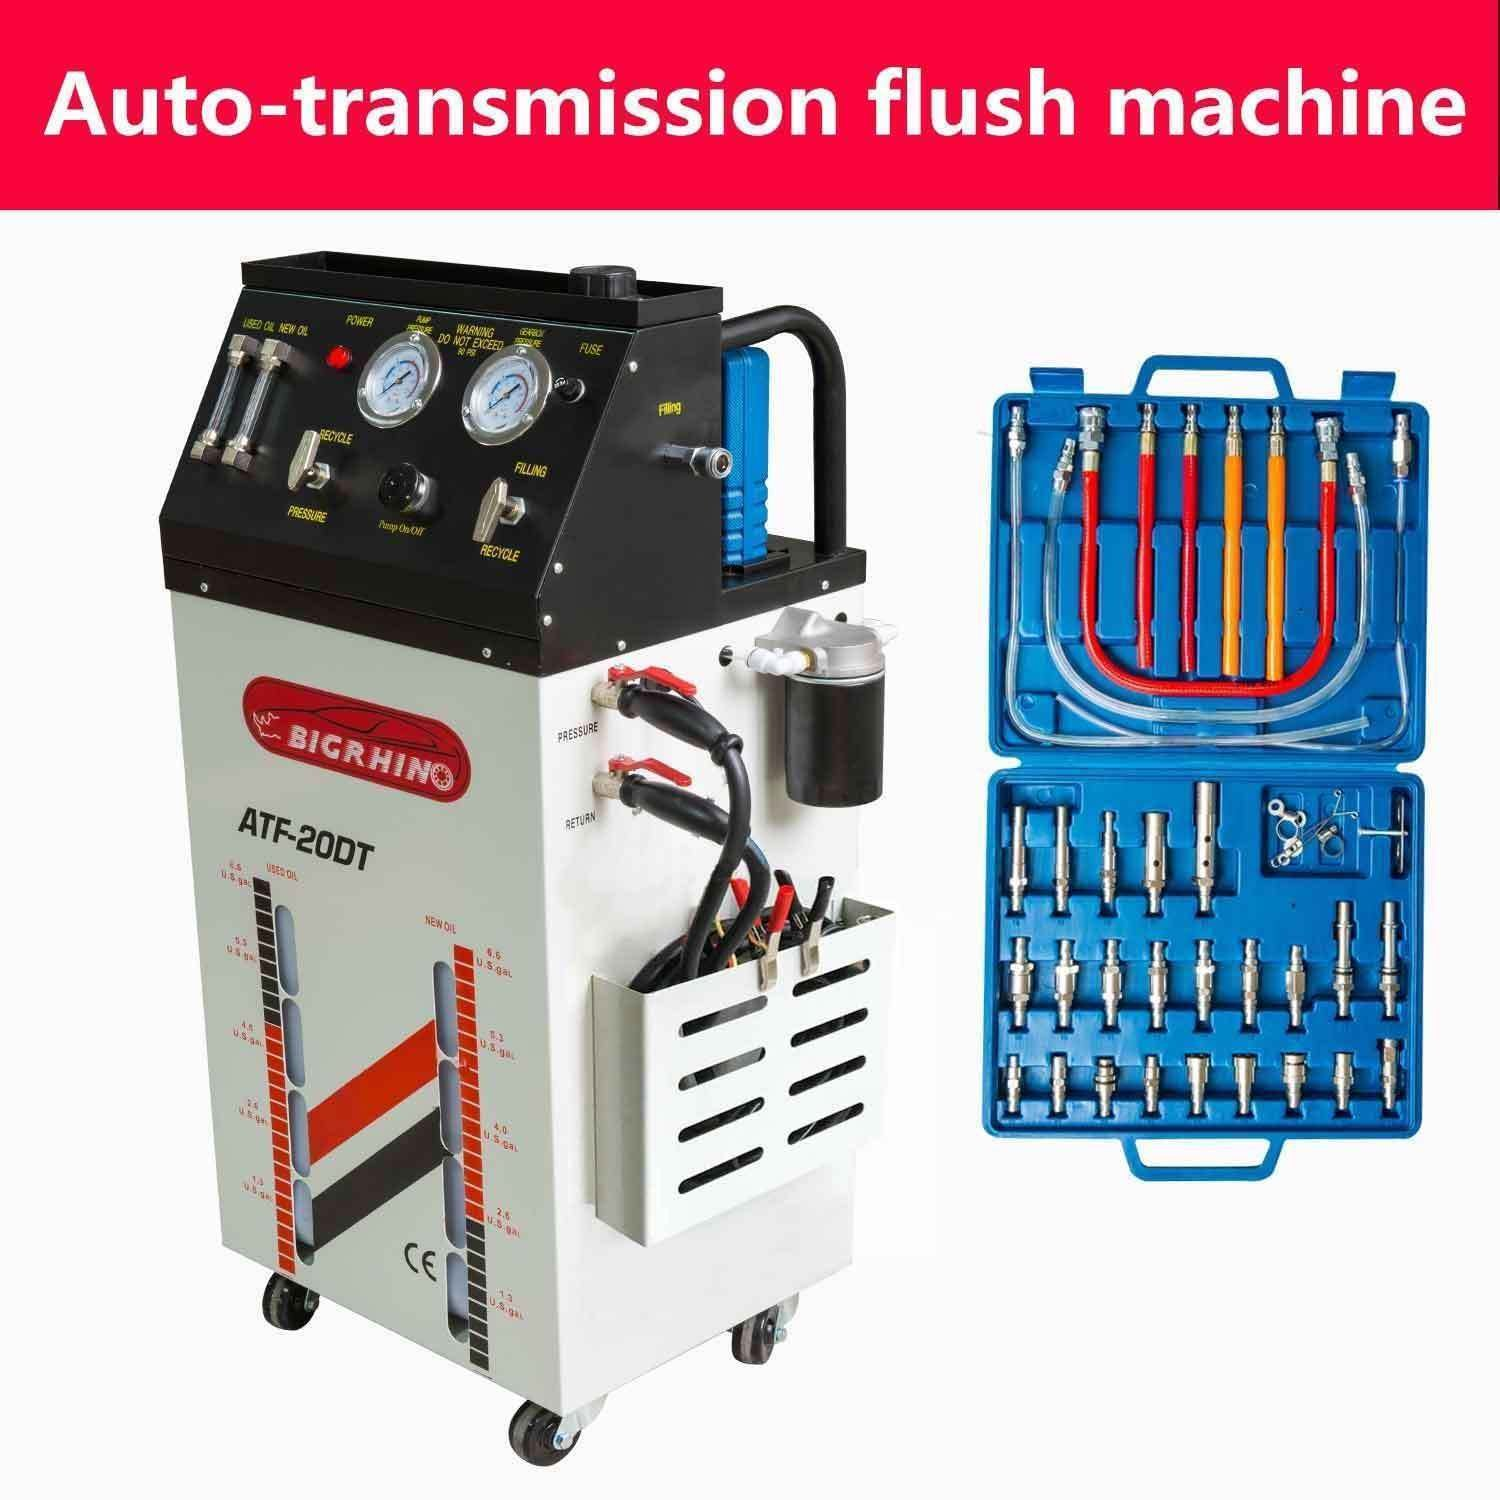 Cr Transmission Fluid Oil Exchange Flush Cleaning Machine by Cr